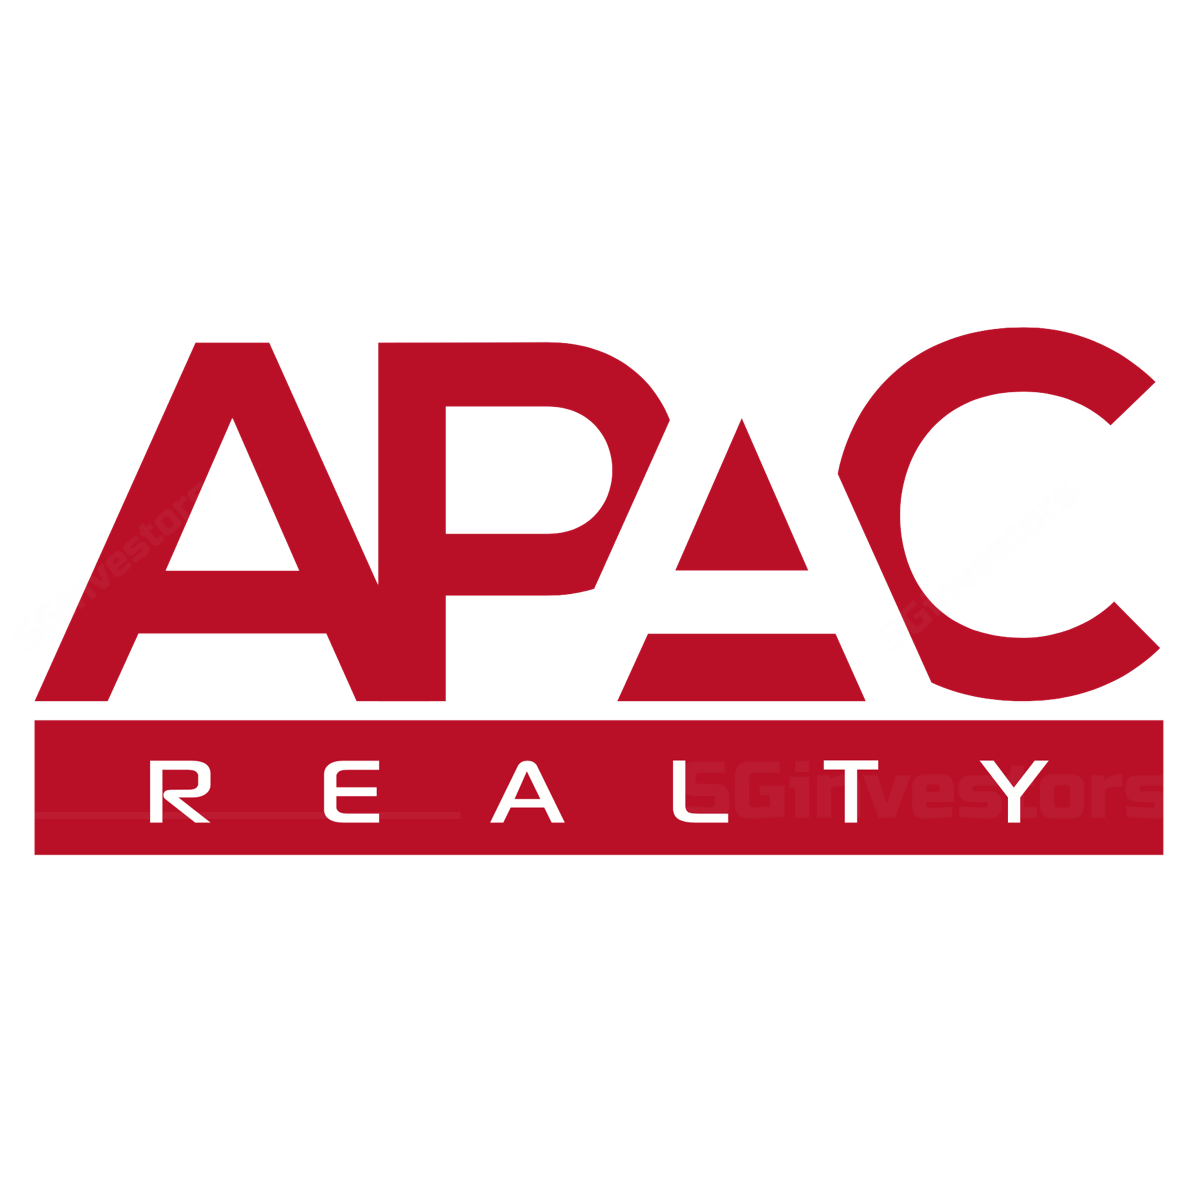 APAC Realty - DBS Vickers 2018-06-14: Opportunity To Accumulate